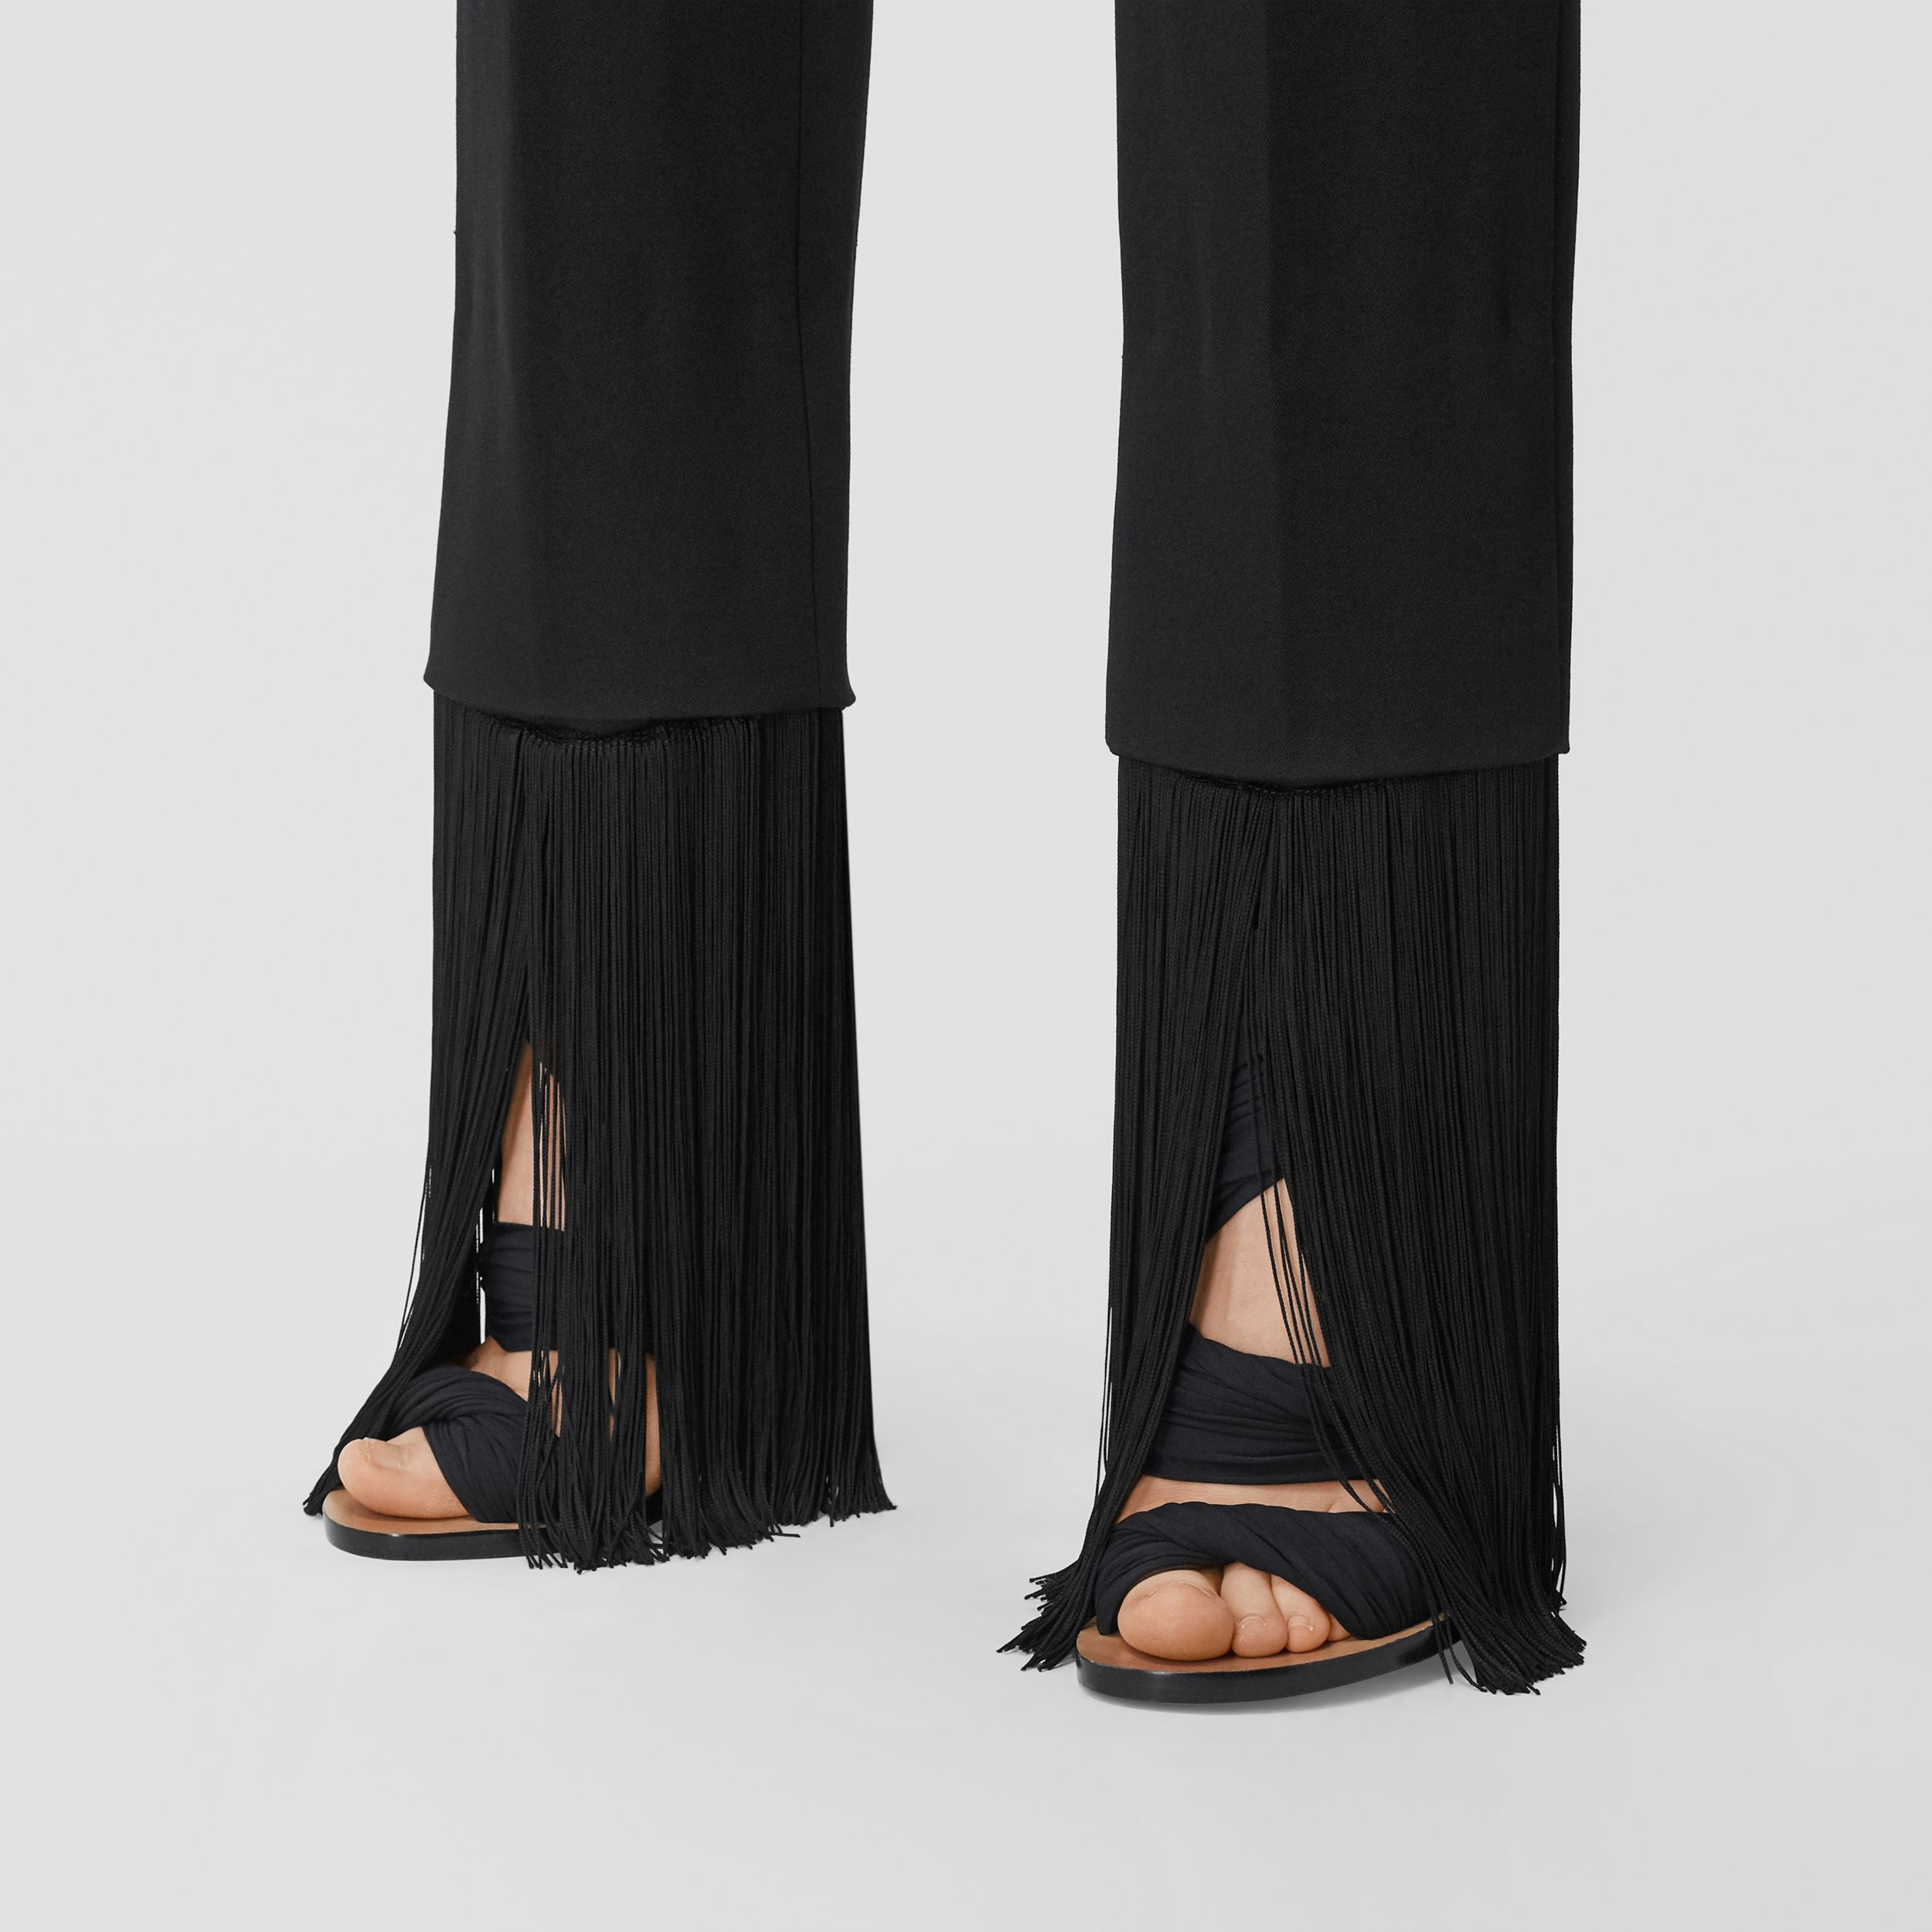 Fringed Grain De Poudre Wool Tailored Trousers in Black - Women | Burberry - 2